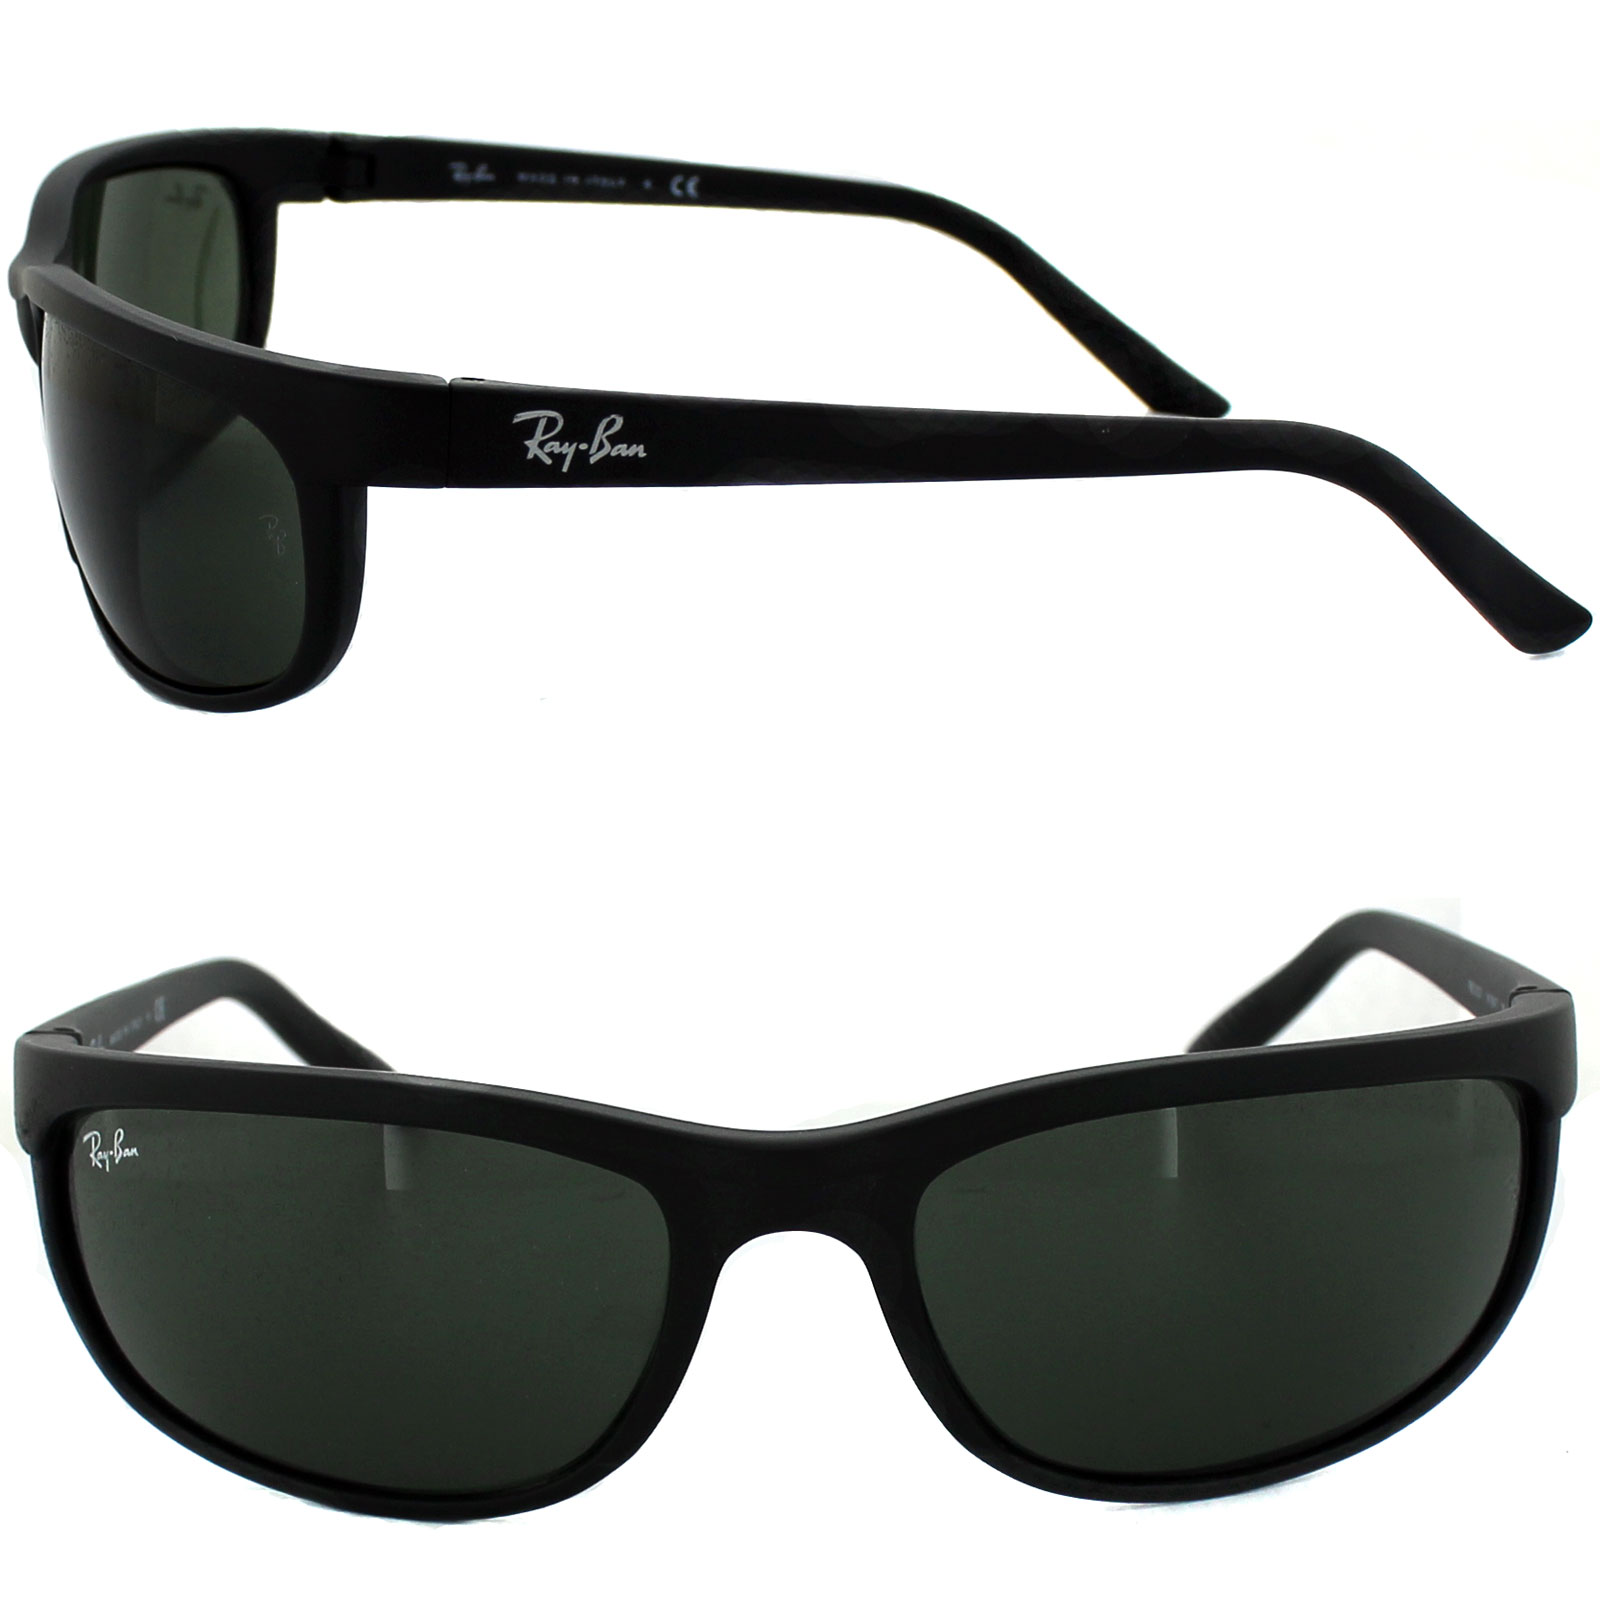 ray ban sunglasses discount site  Cheap Ray-Ban Predator 2 2027 Sunglasses - Discounted Sunglasses